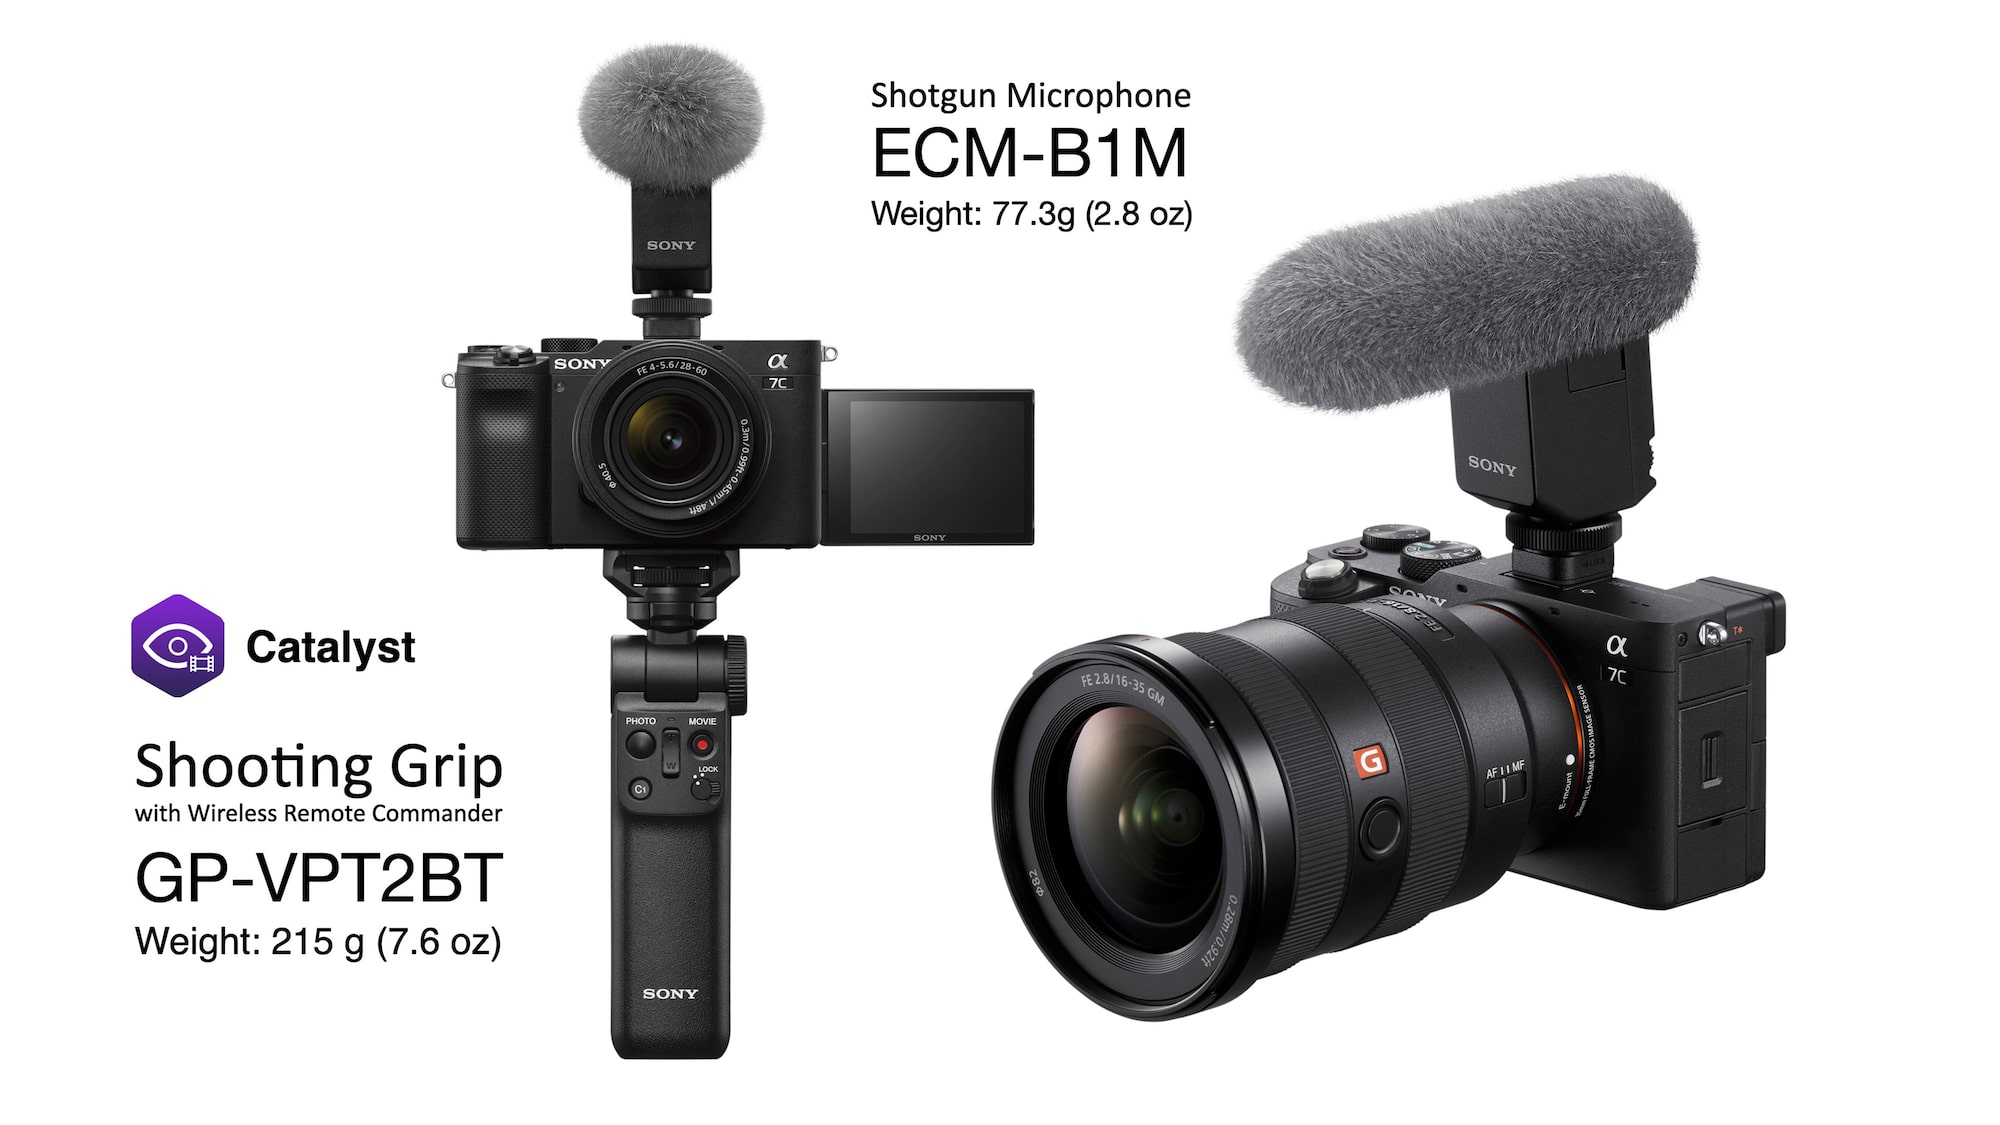 Alpha 7C, GP-VPT2BT shooting grip and ECM-B1M shotgun microphone